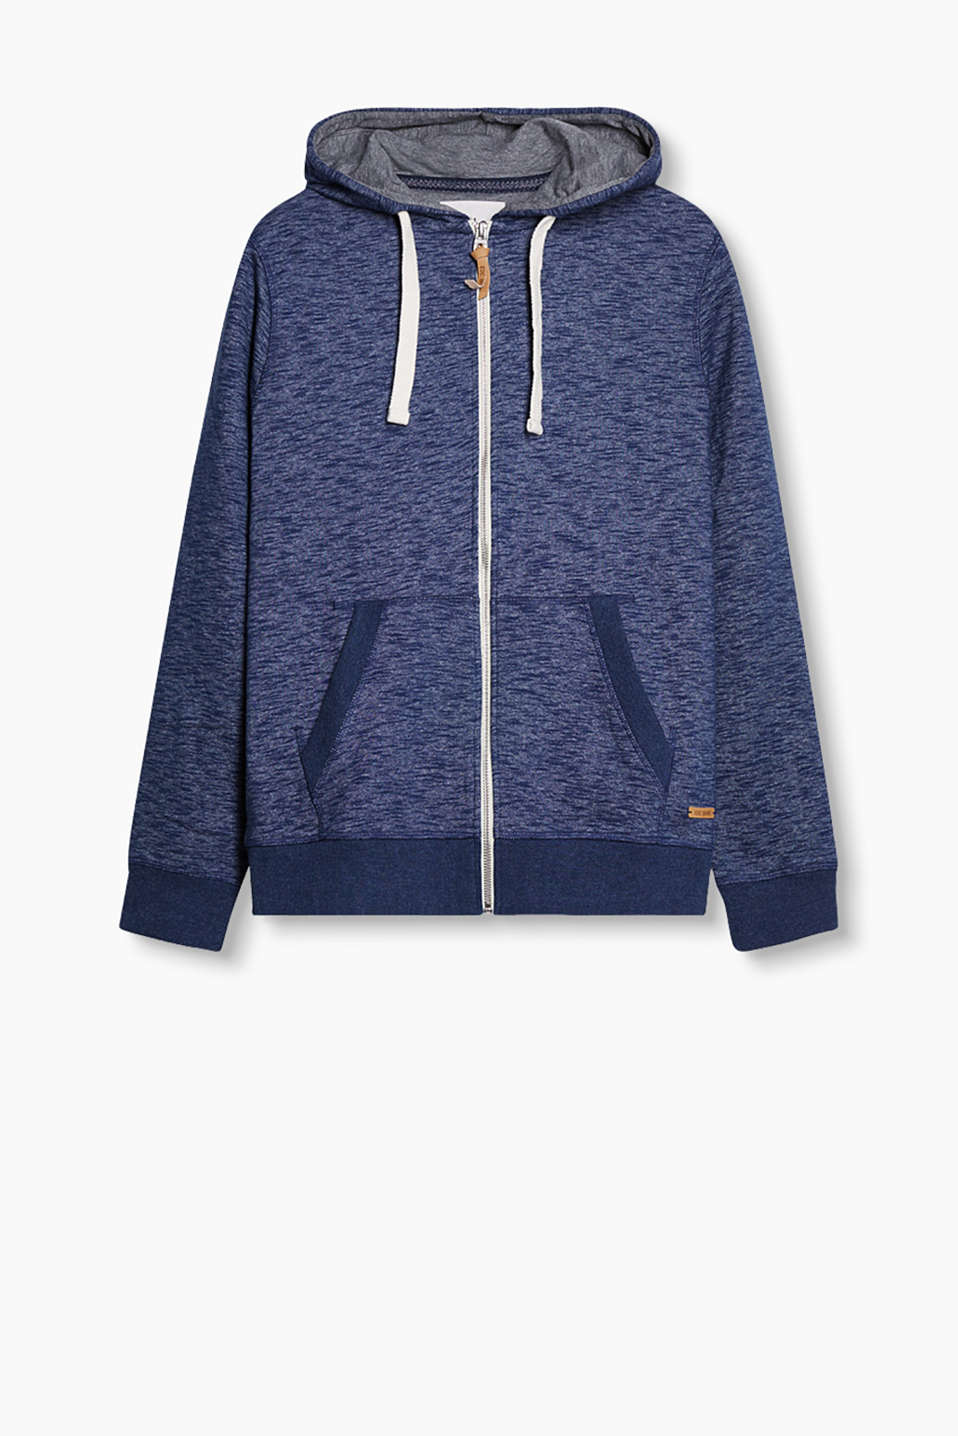 Sweatshirt jacket made of pure cotton in a stylish slub effect with a hood and kangaroo pockets